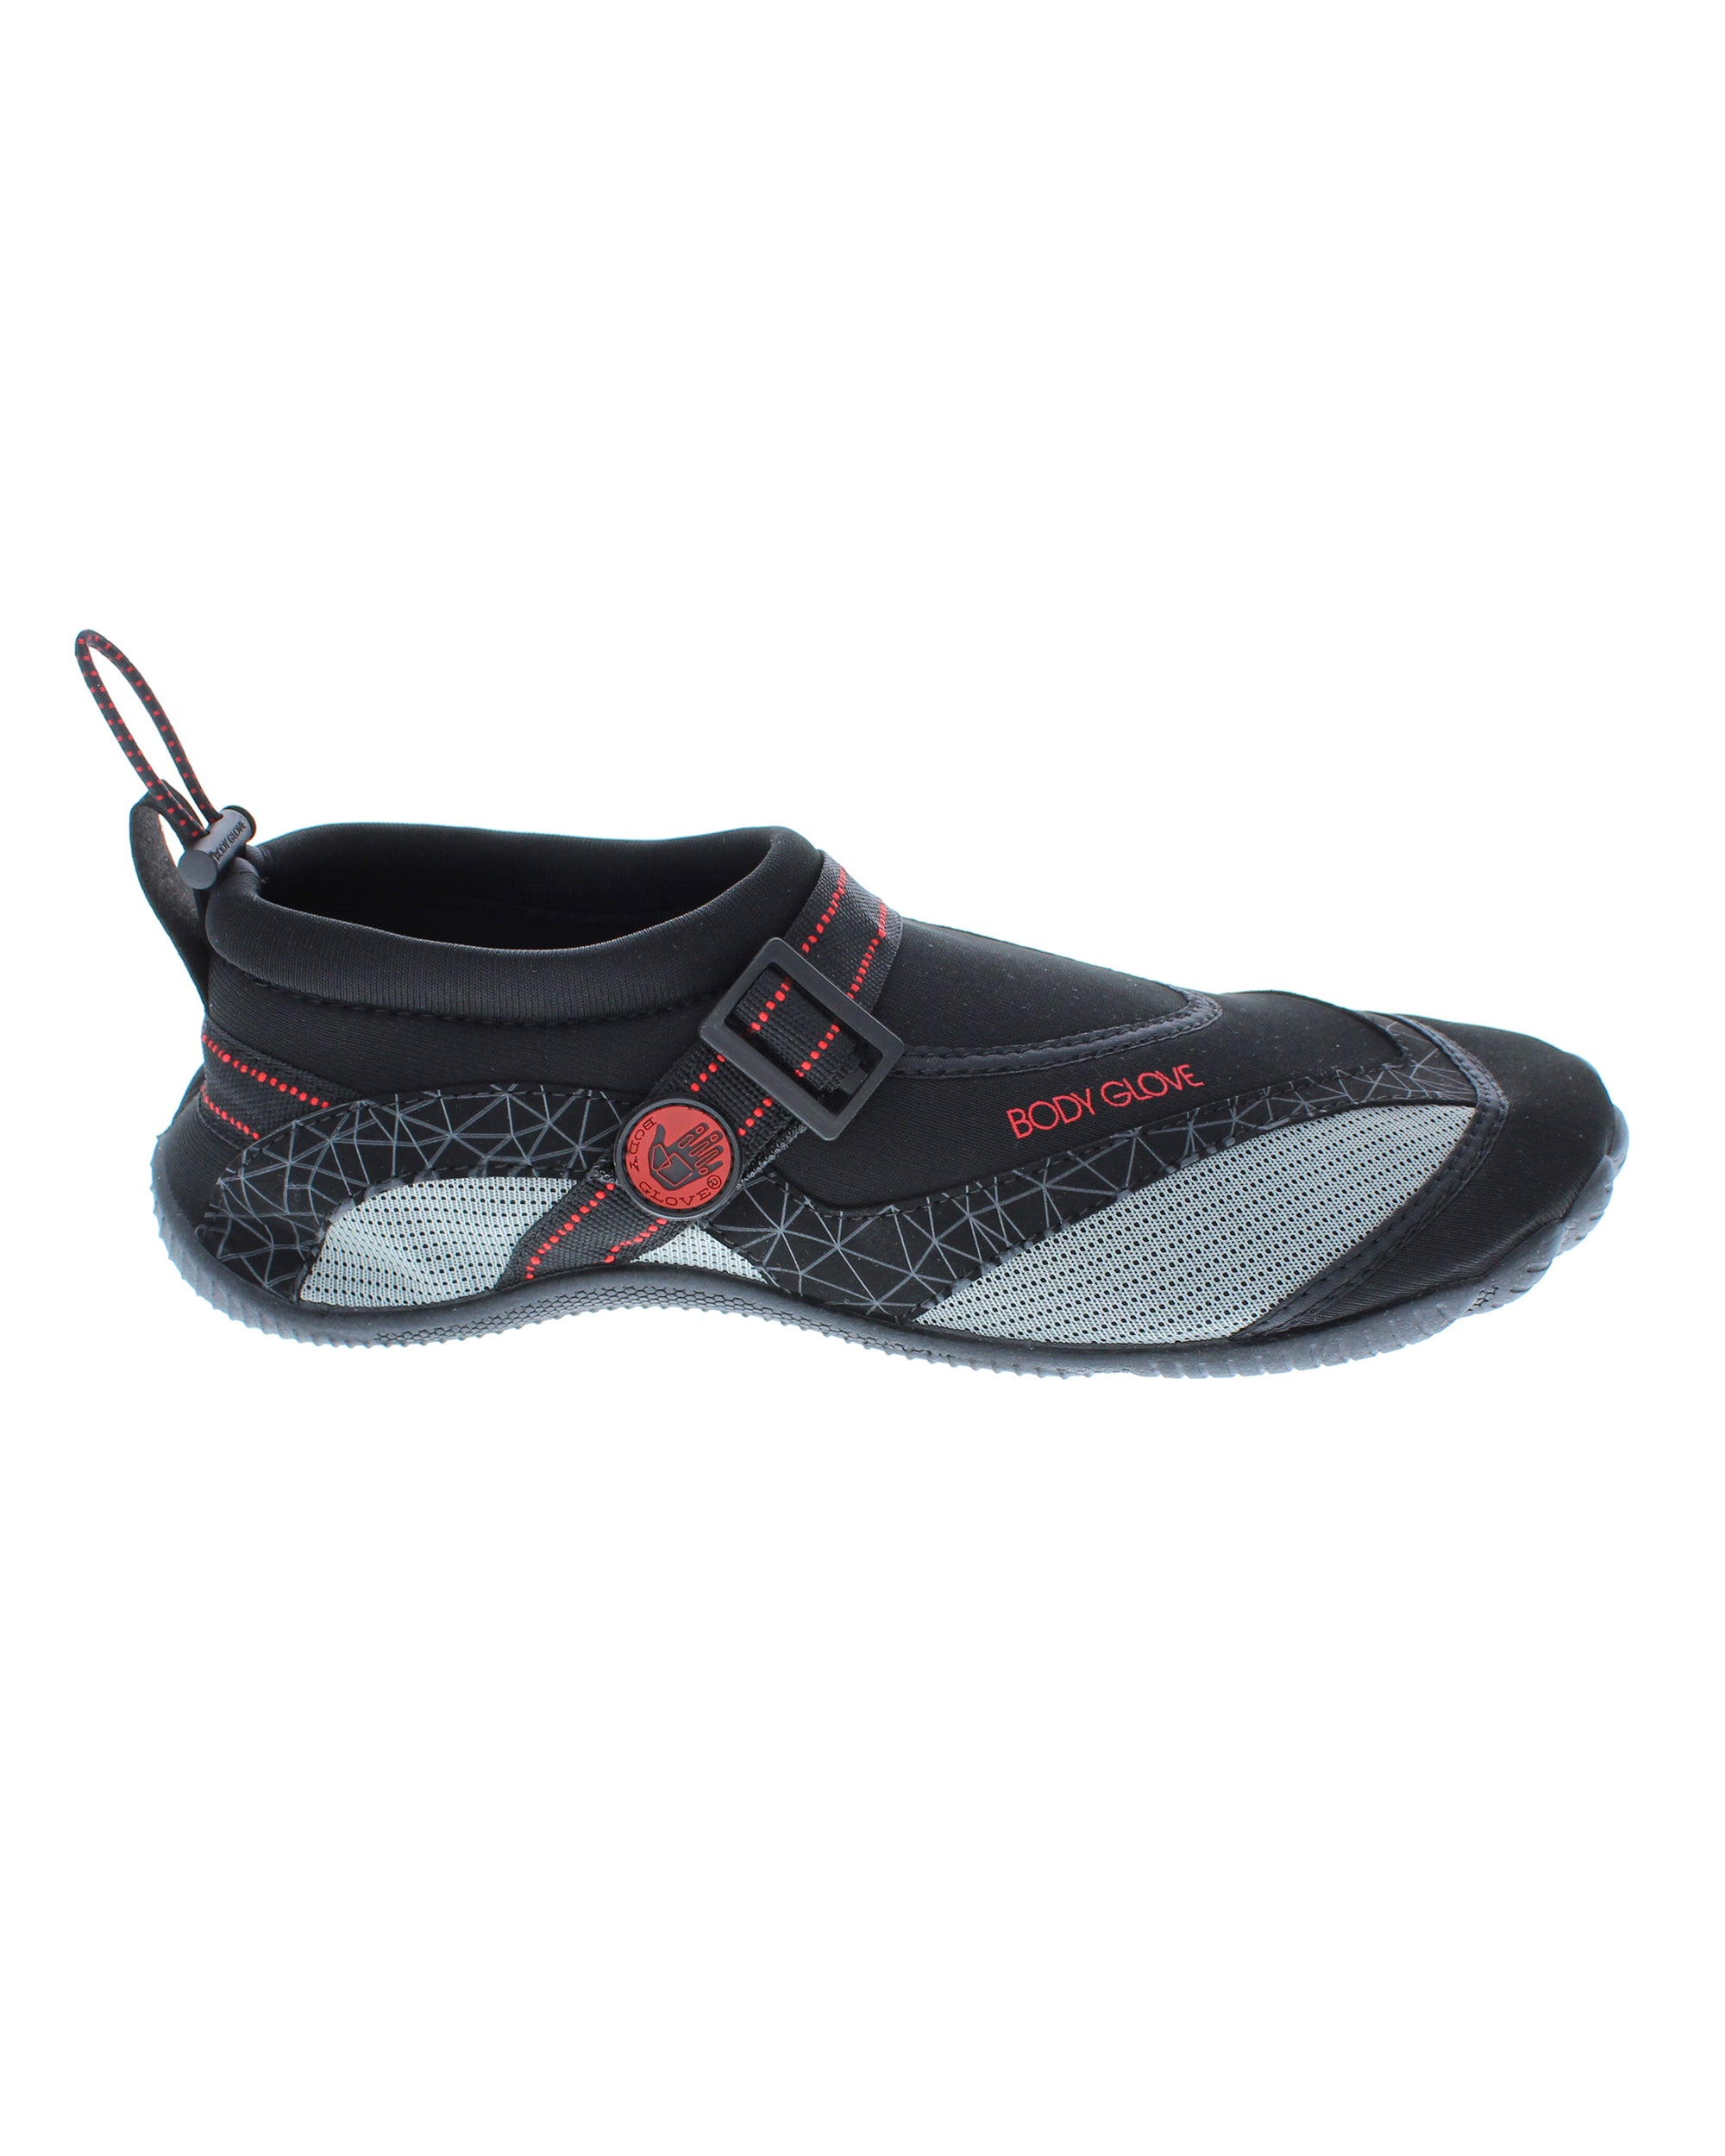 Men's Realm Water Shoes BlackInfrared